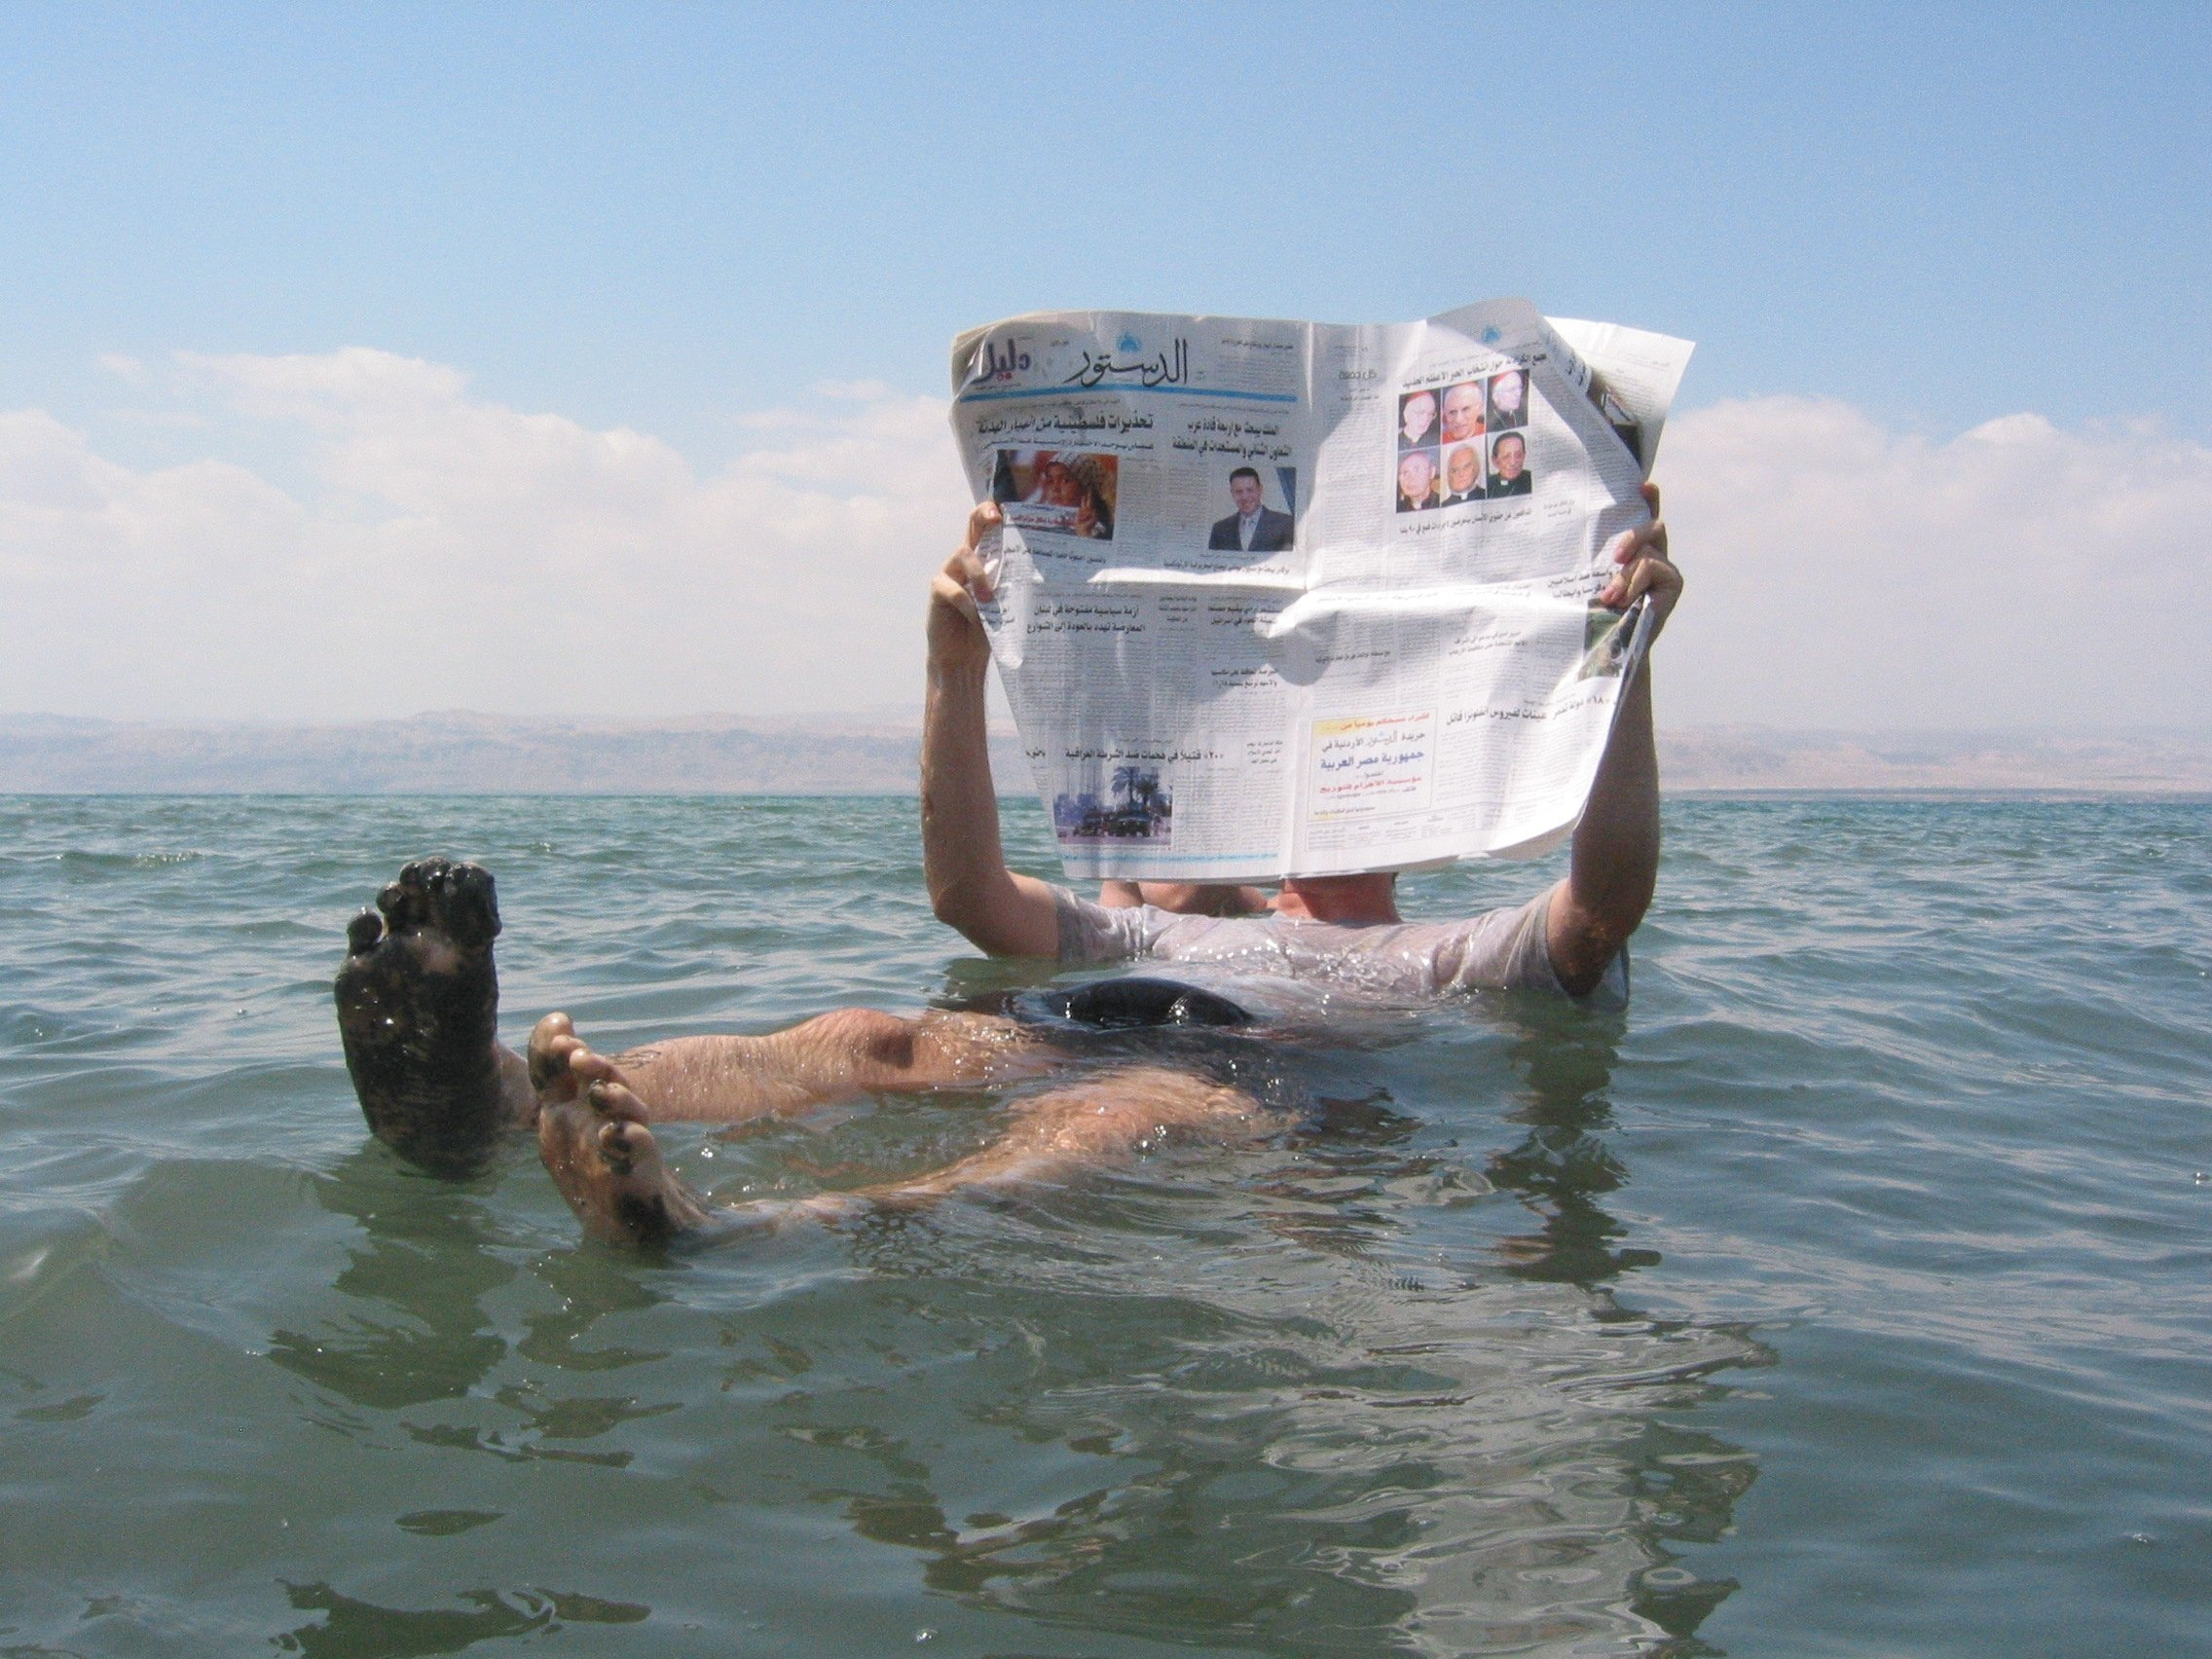 Un homme lit un journal en mer Morte